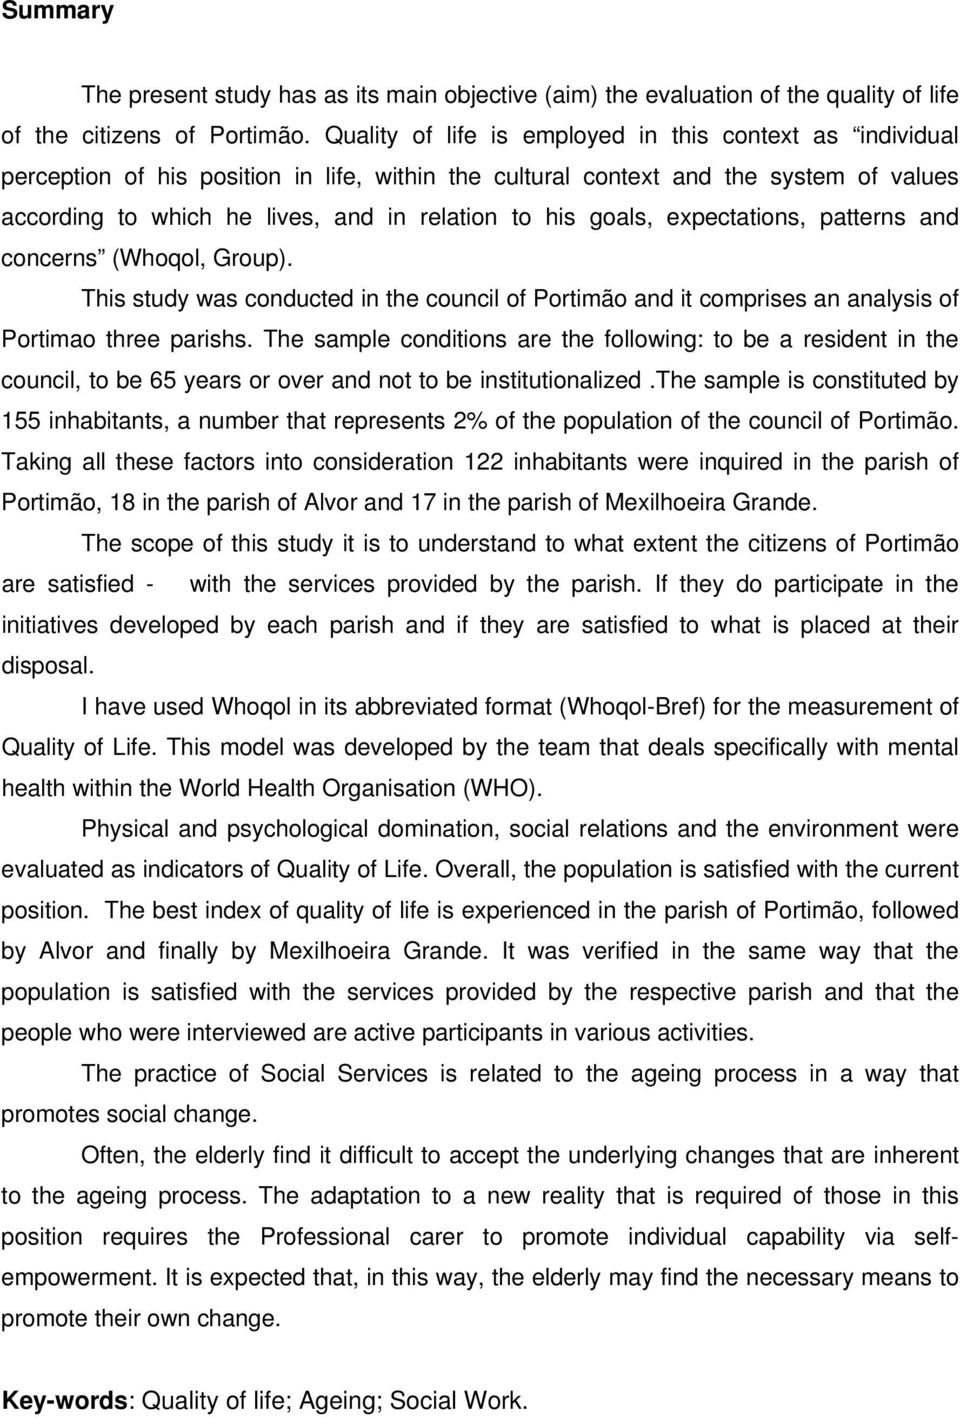 goals, expectations, patterns and concerns (Whoqol, Group). This study was conducted in the council of Portimão and it comprises an analysis of Portimao three parishs.